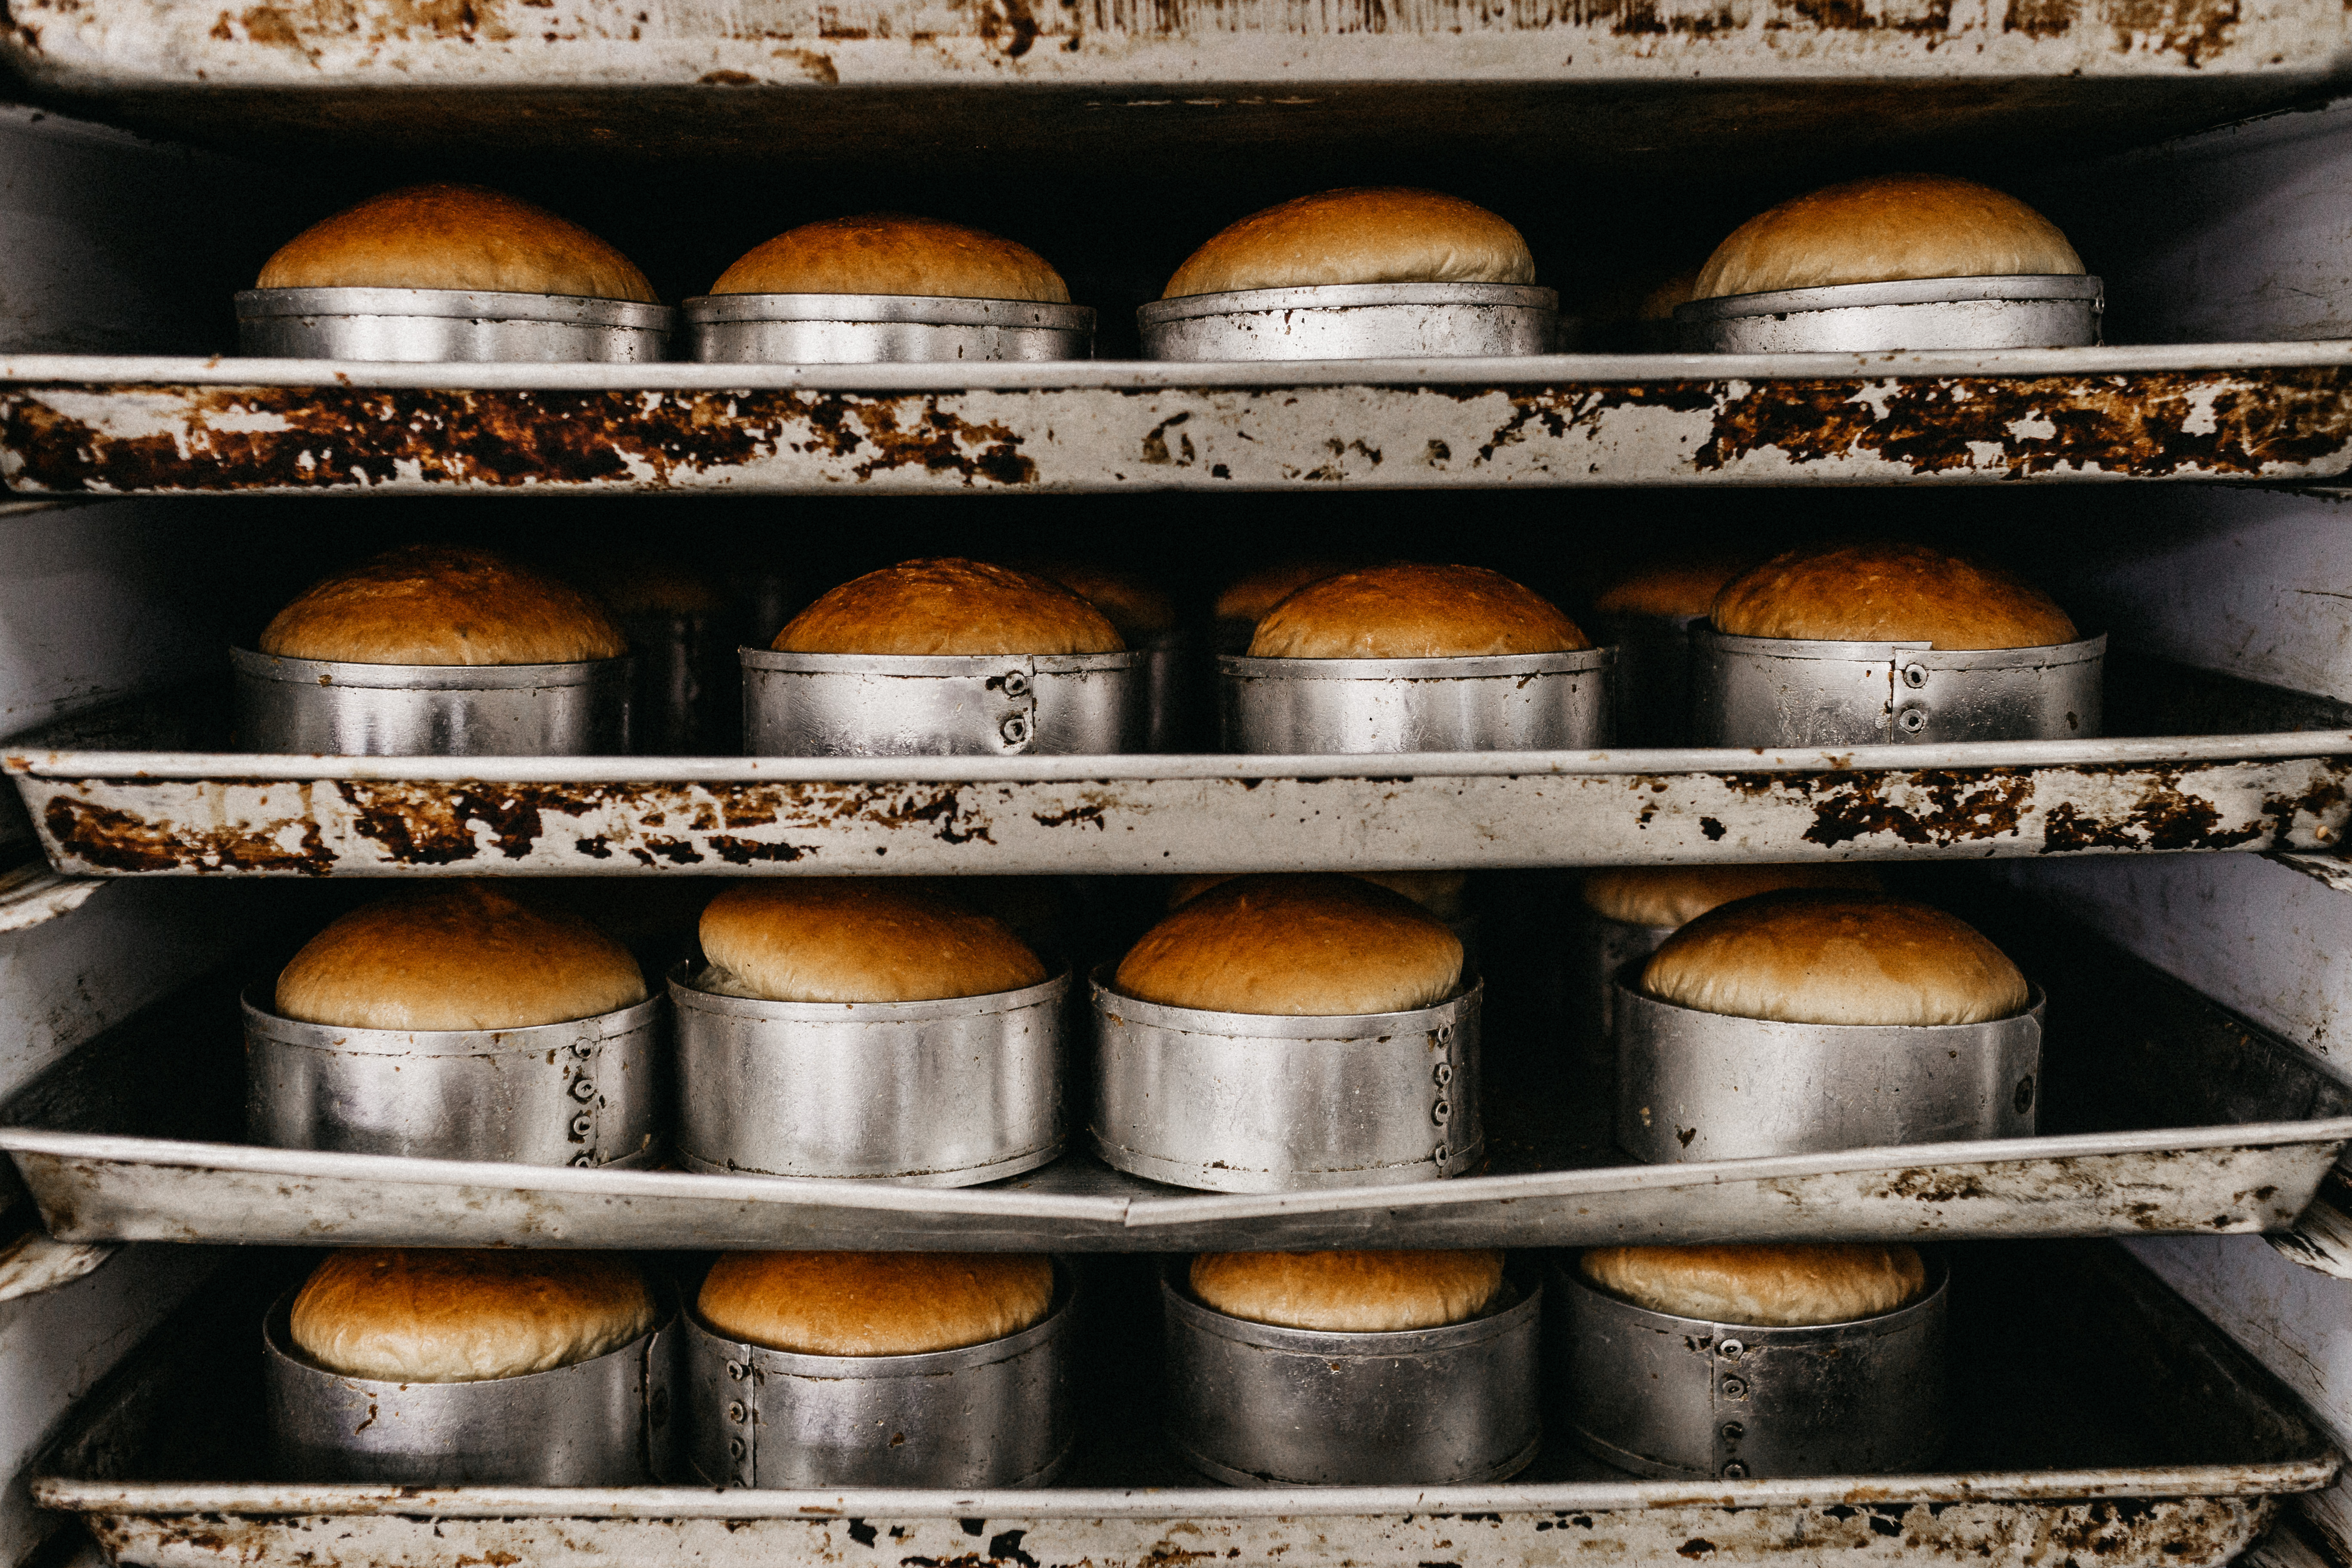 Baked Food Close-up Photography